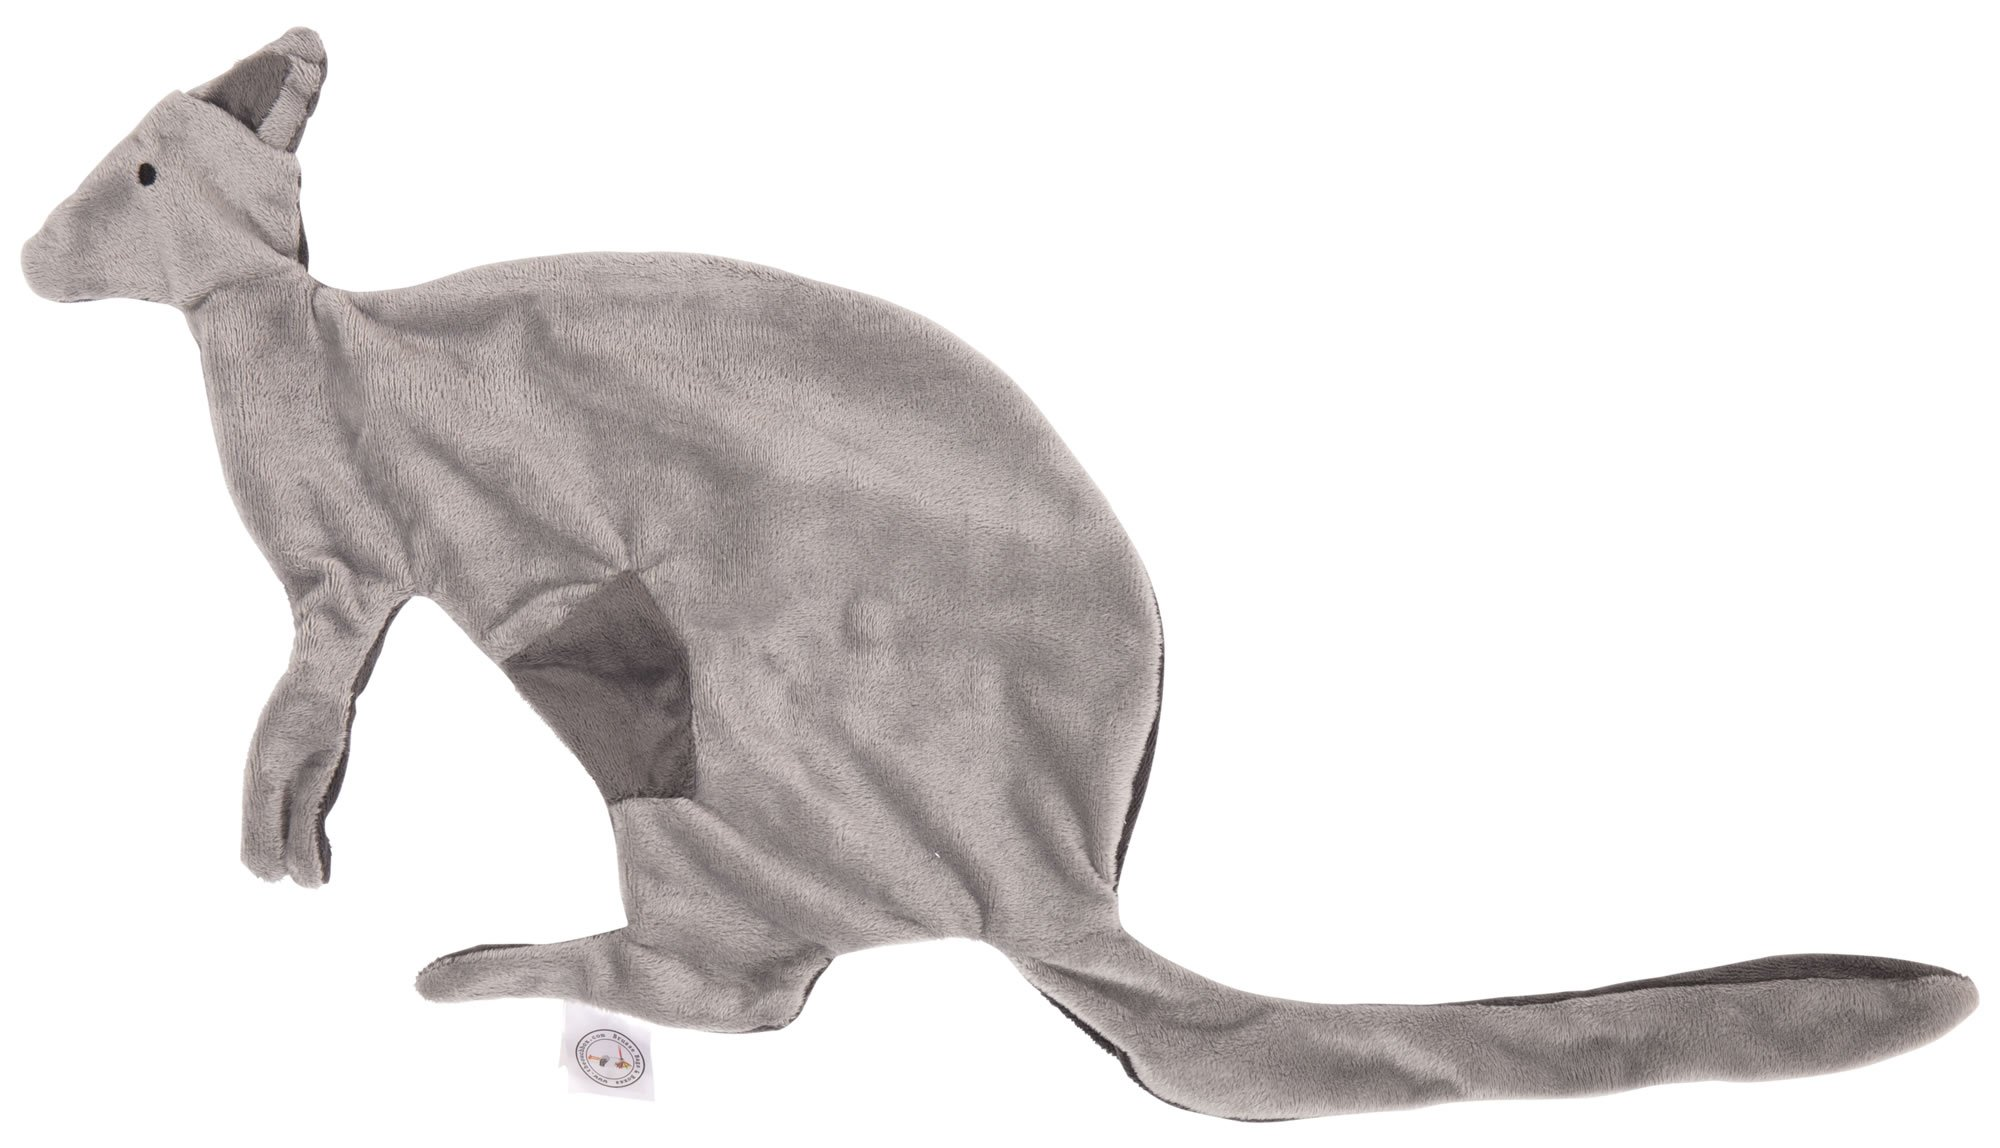 "Brusse Bags & Boxes My Blankie Soft Security Blanket Kangaroo Super Cute Double Sided Light/Dark Grey 100% Polyester Fleece 60 x 28cm/23 x 11"" Unisex Newborn Comforter Tail Attaches to Dummy/Pacifier"